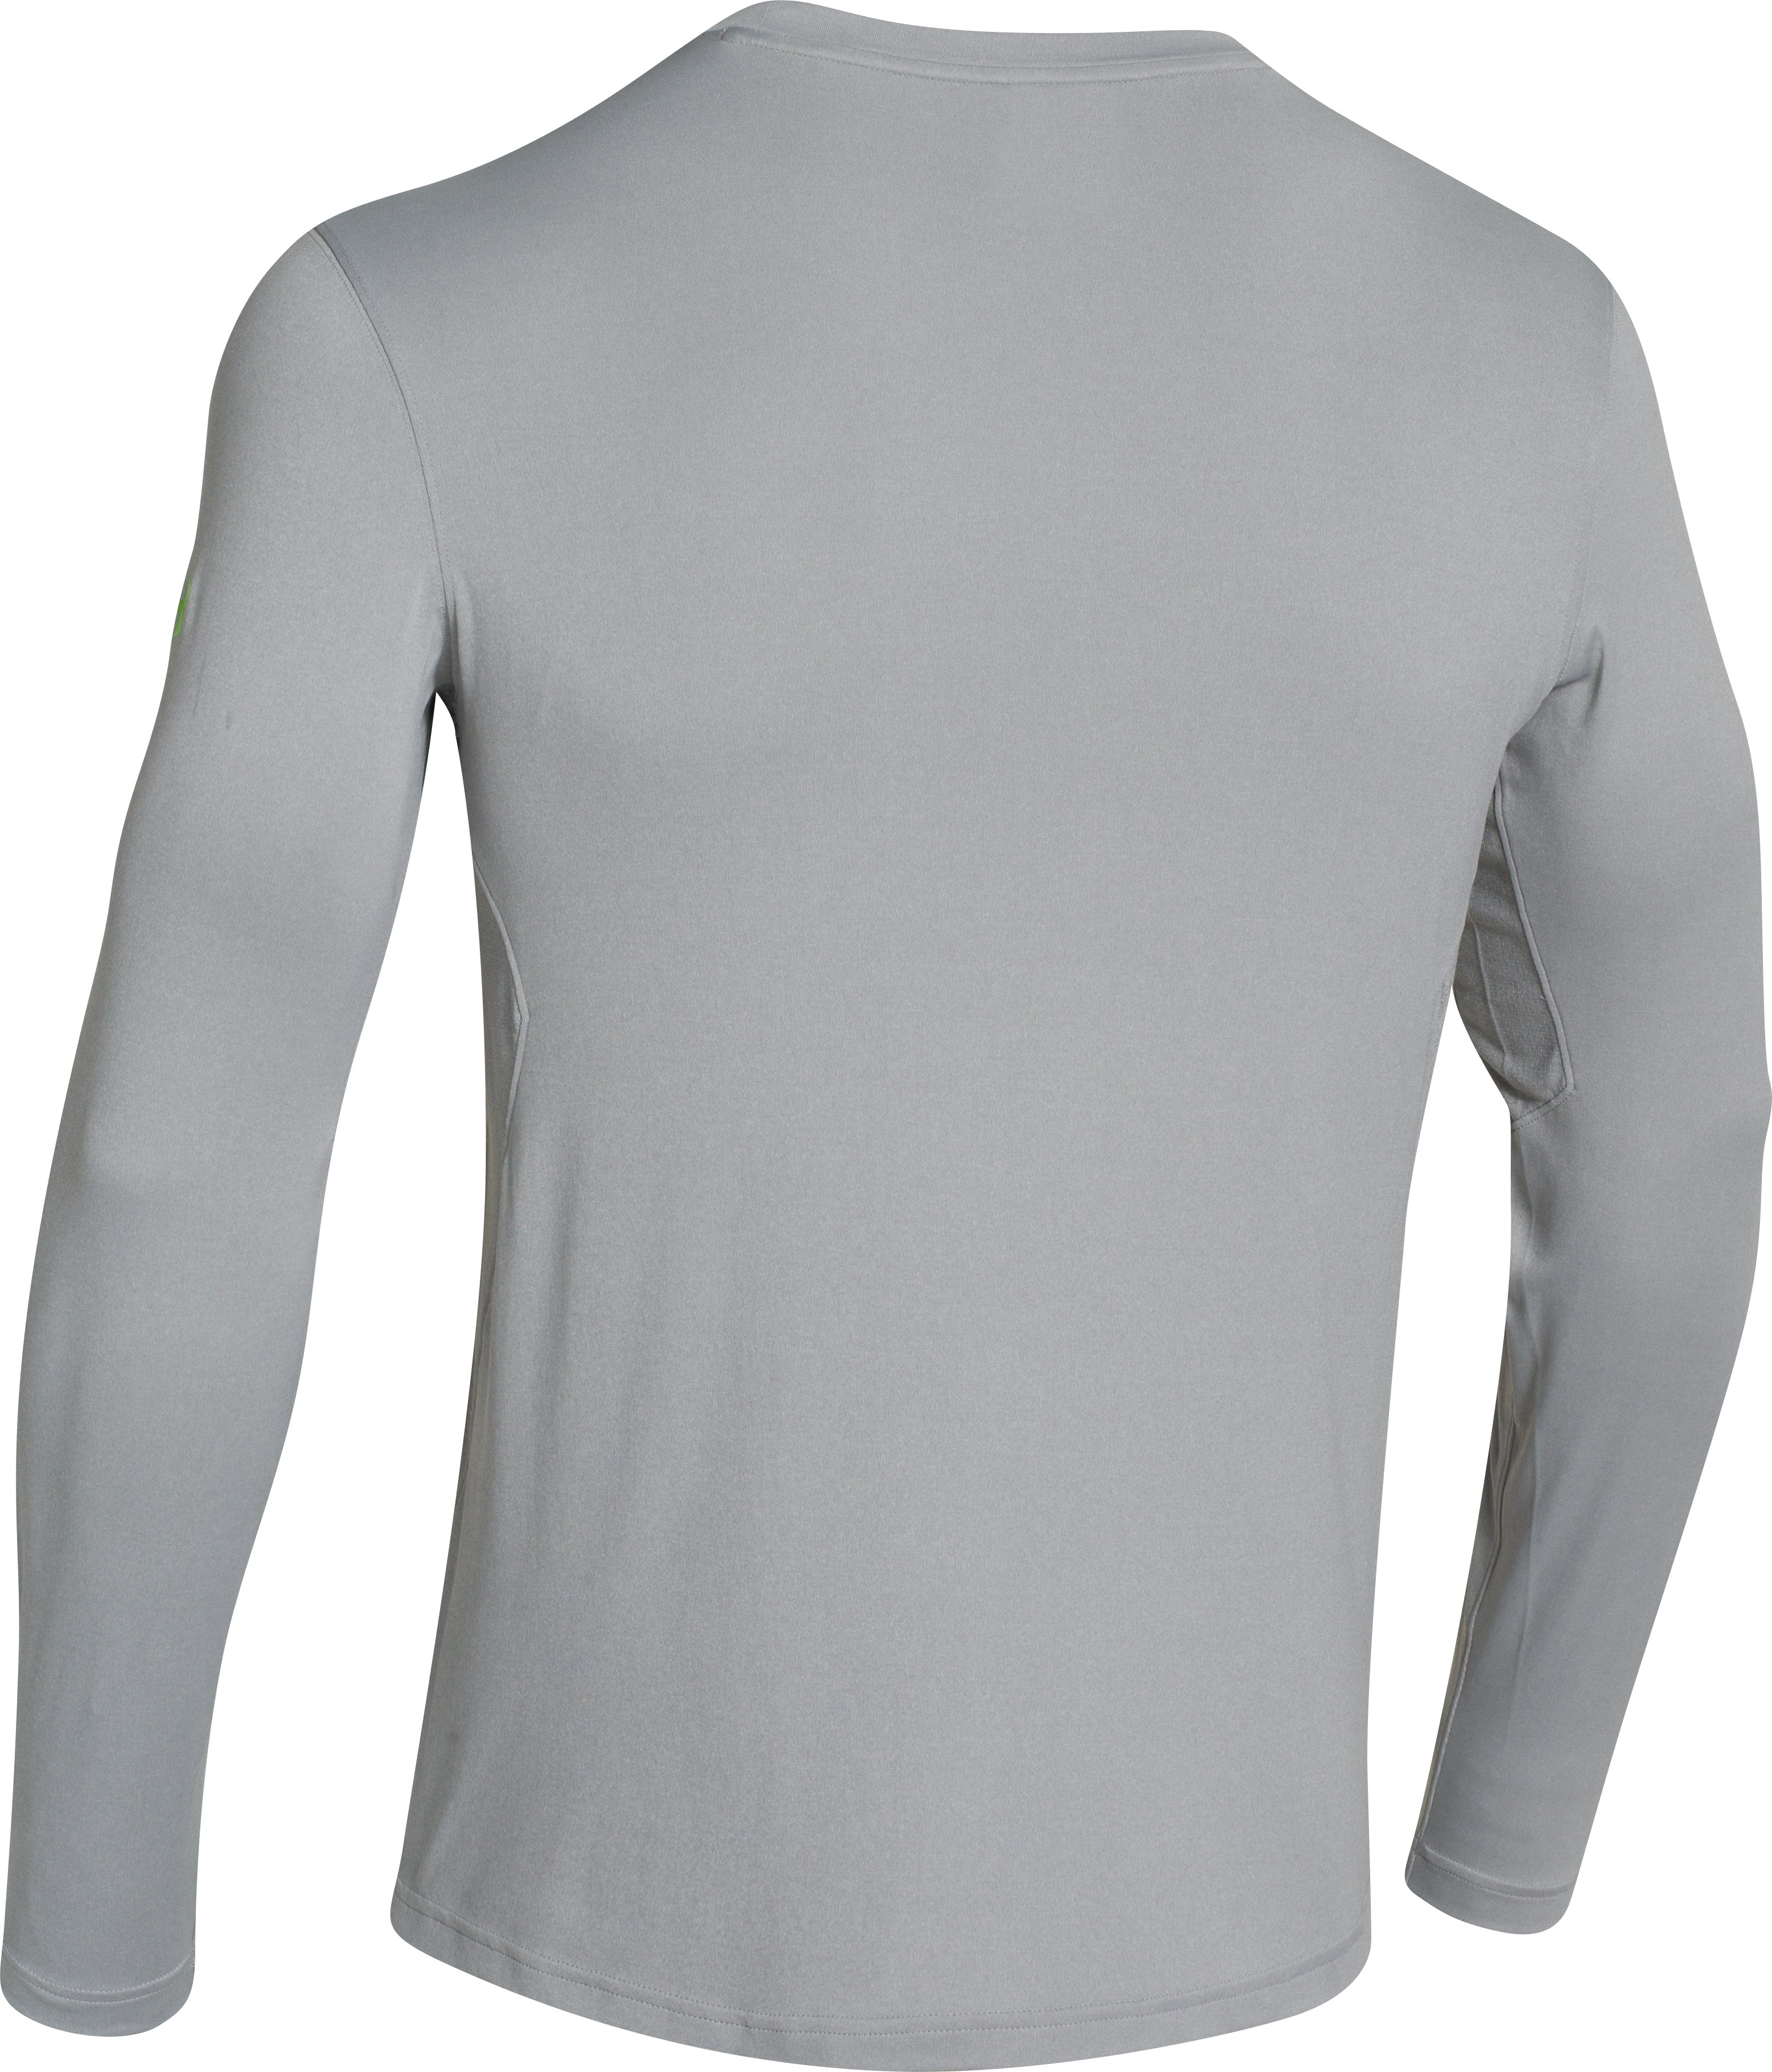 Men's UA Iso-Chill Element Long Sleeve Shirt, True Gray Heather,